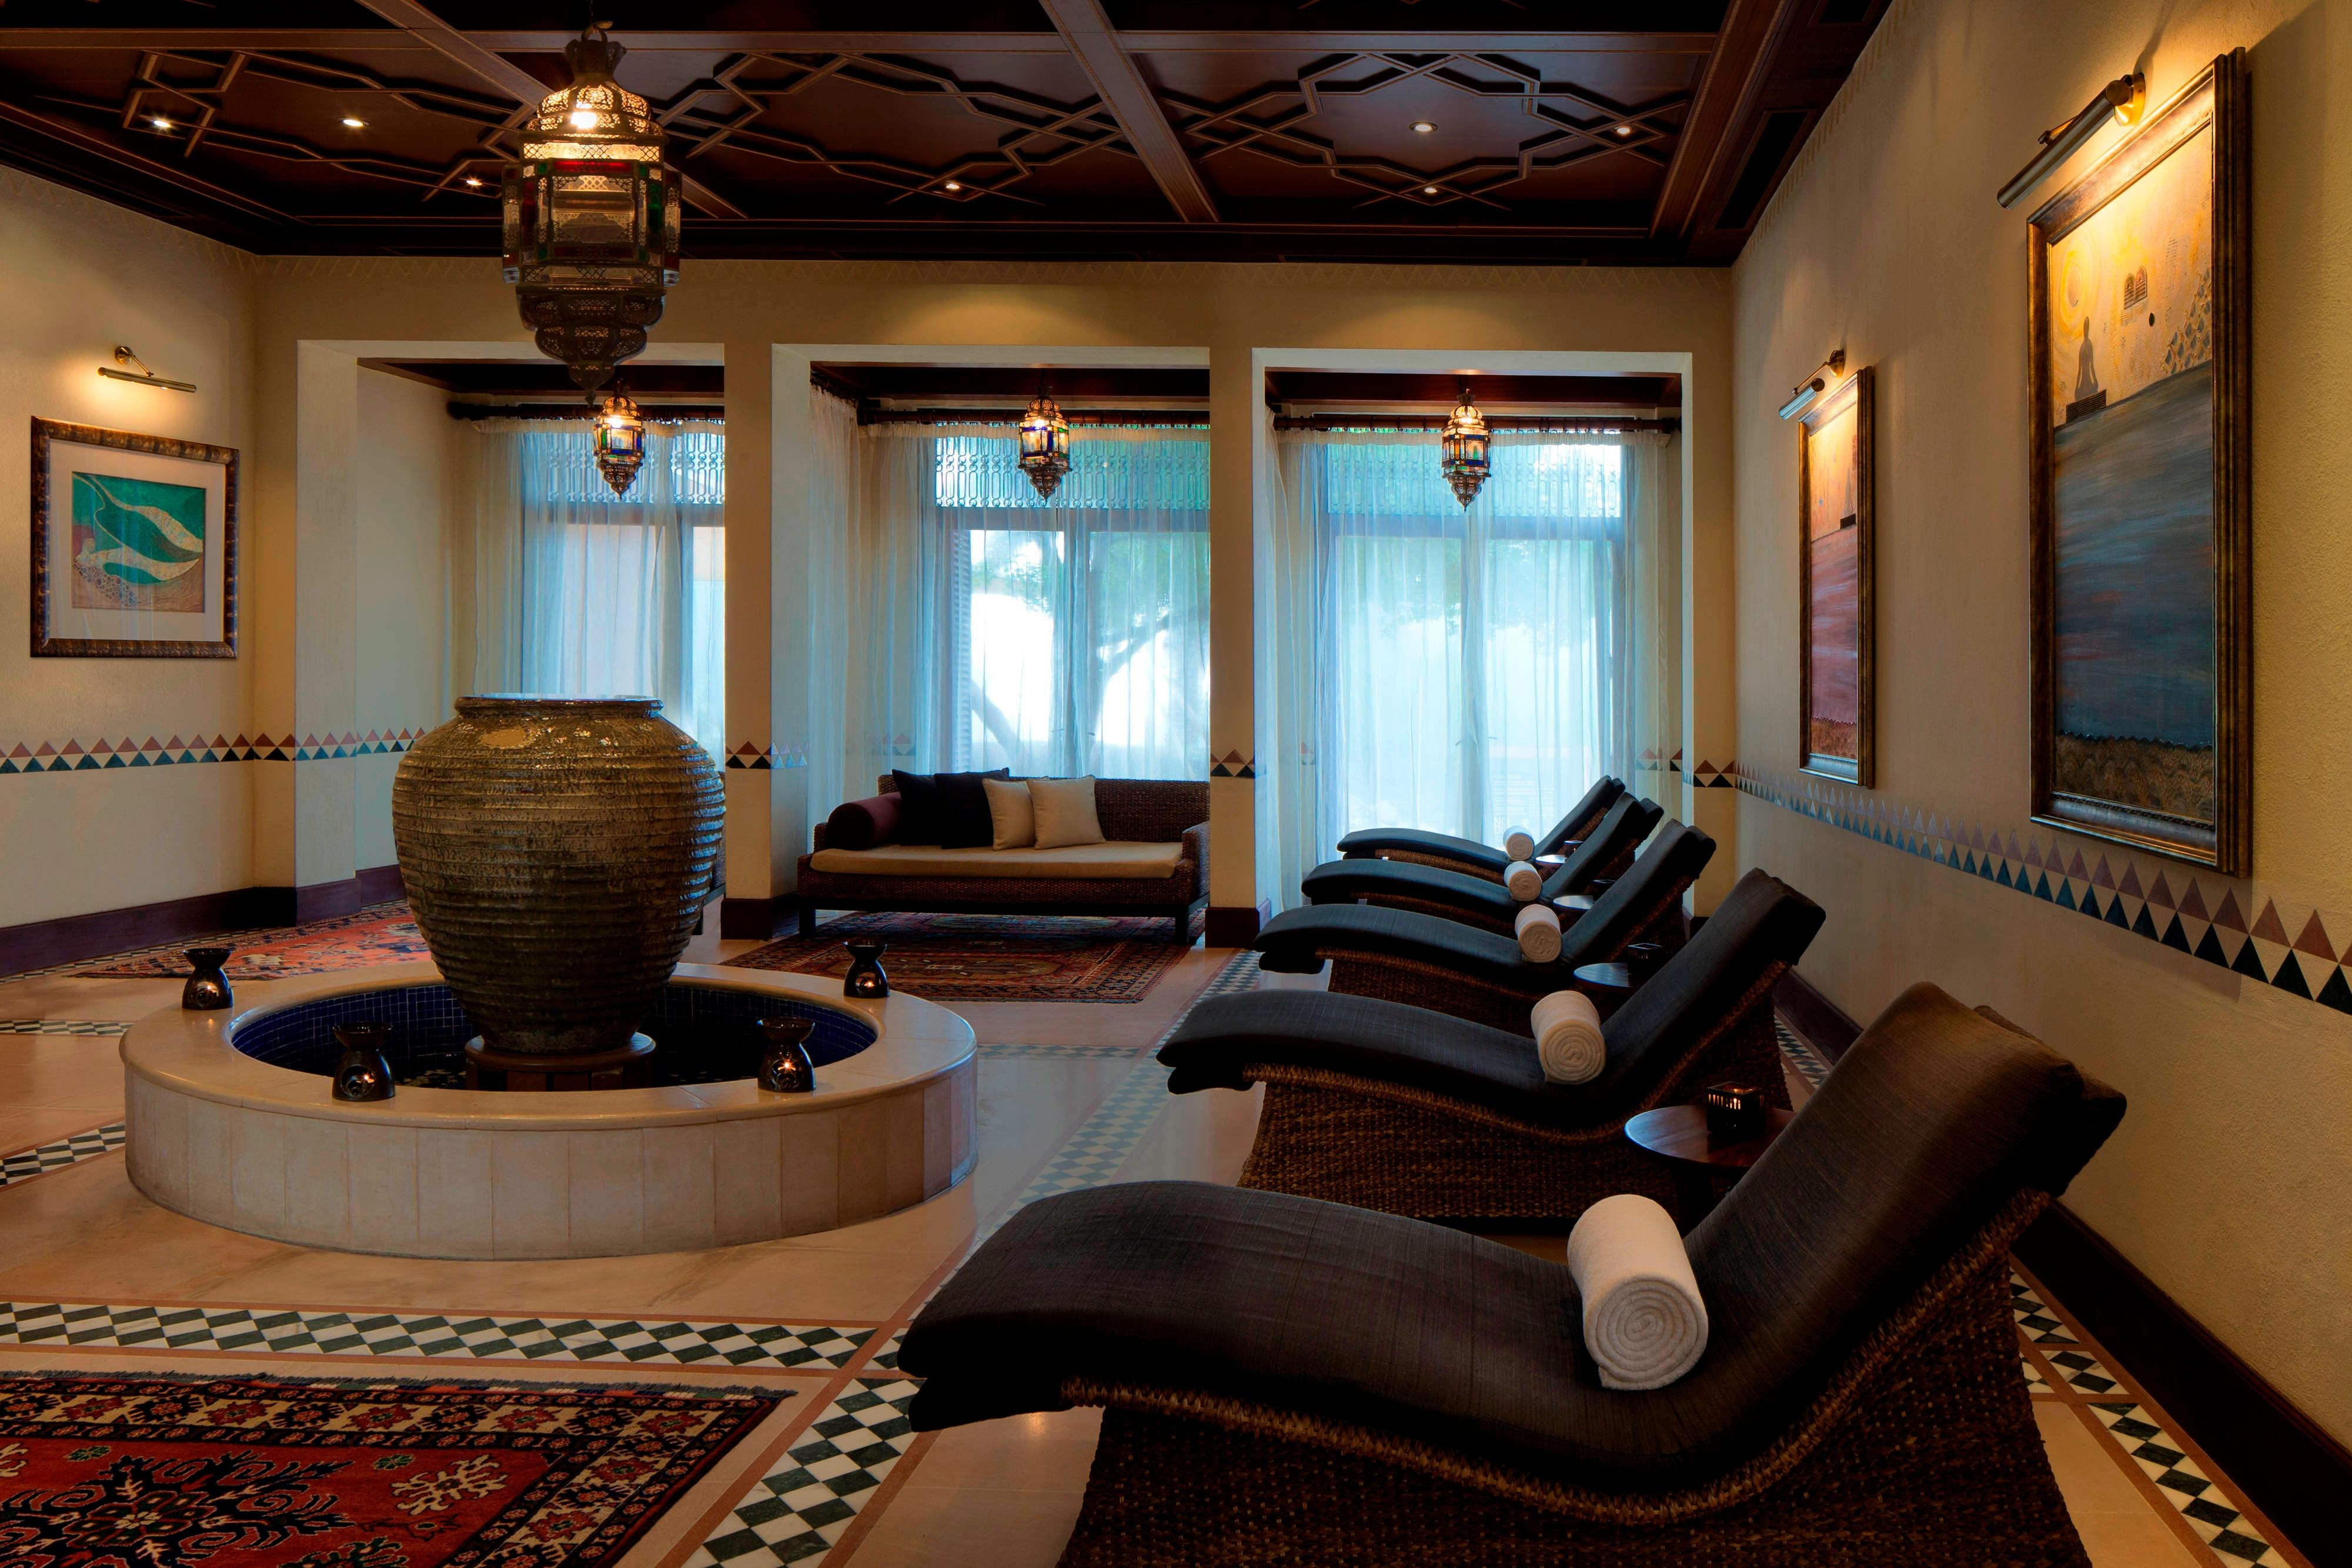 Timeless Spa - Relaxation Area